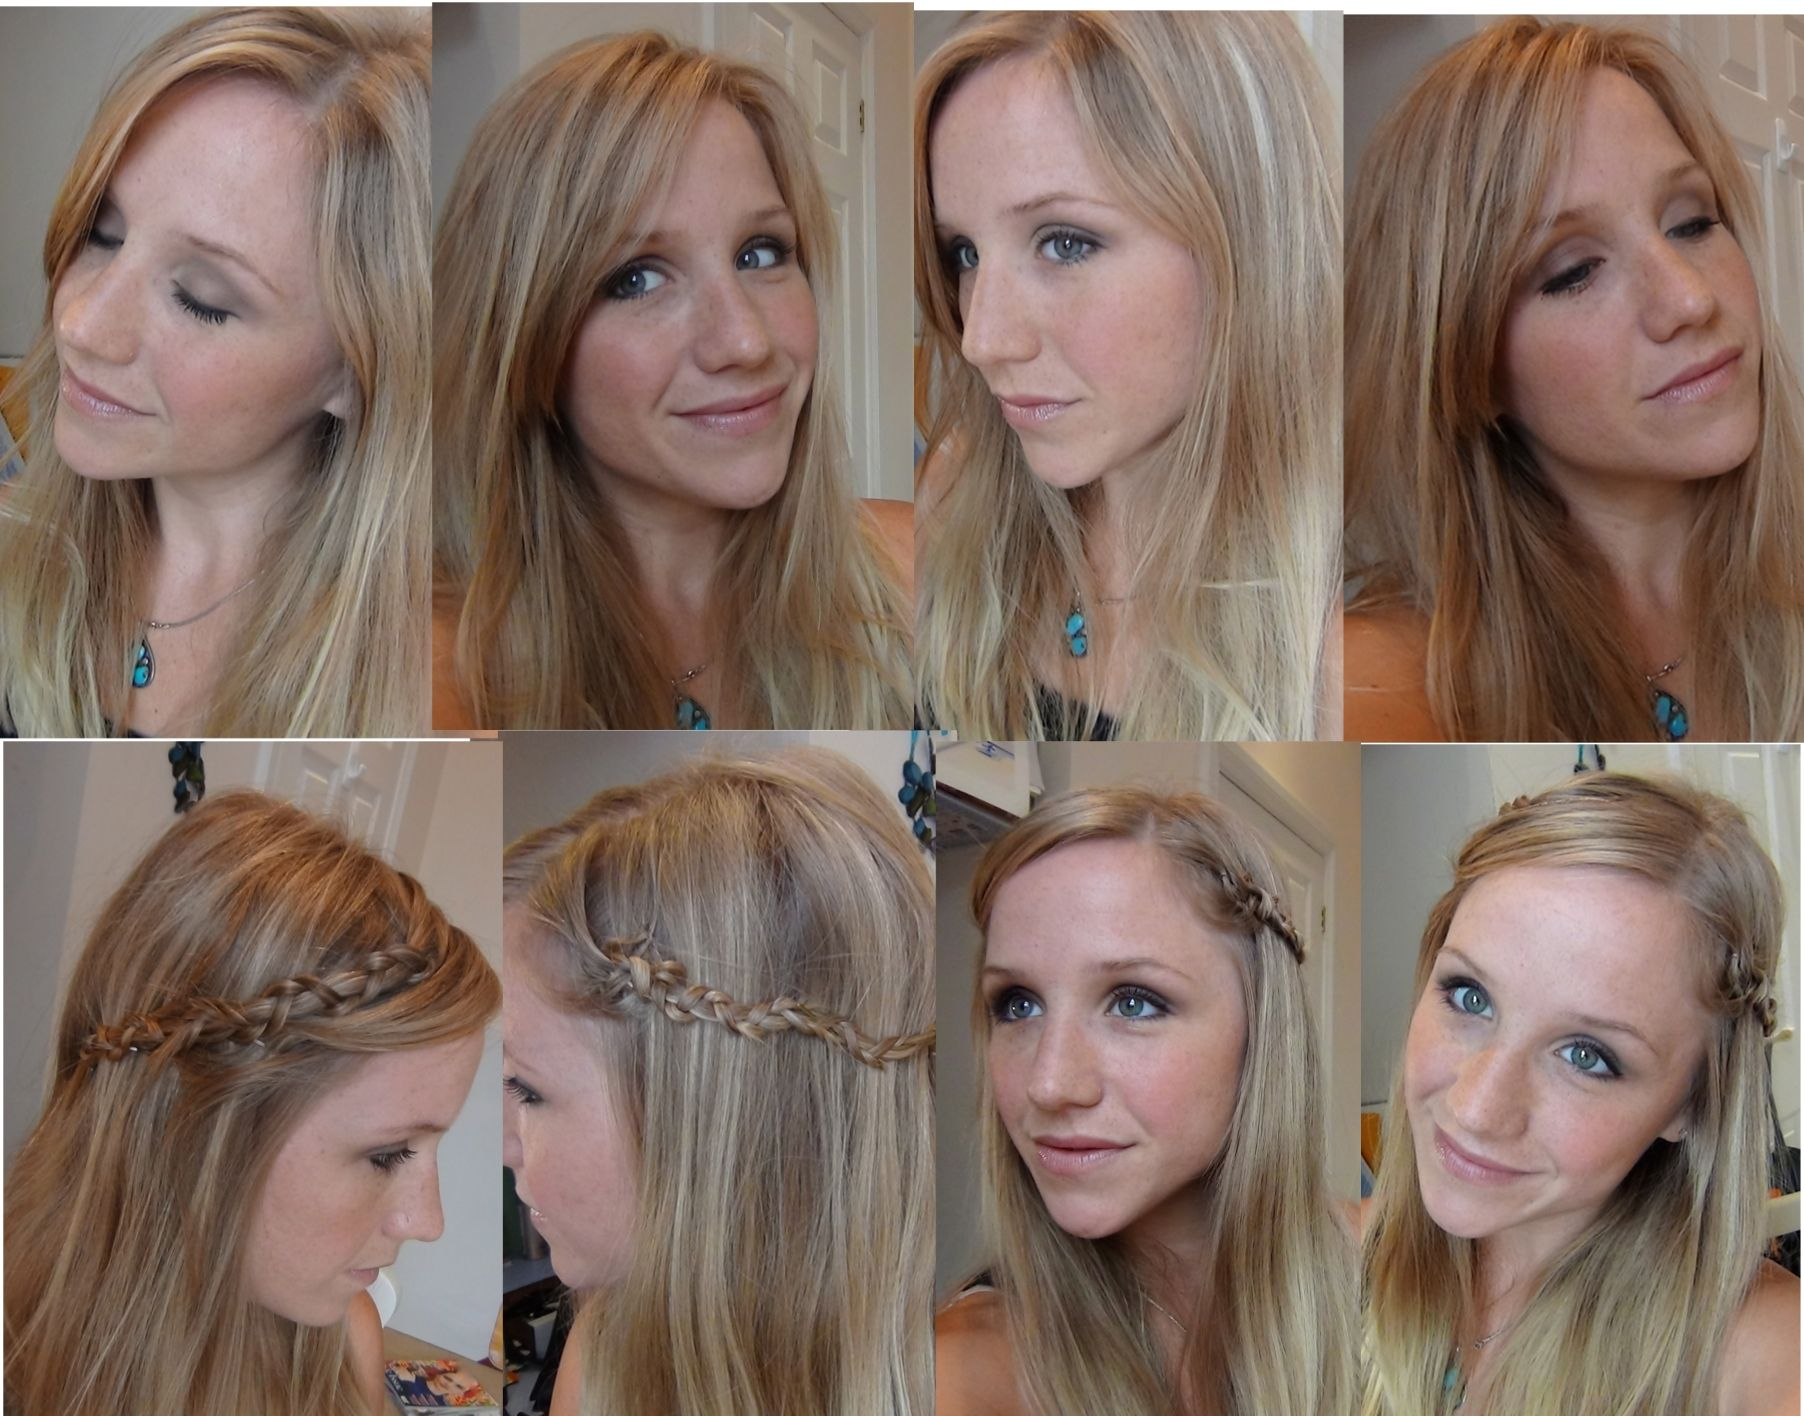 Back to school hair and makeup tutorial on httpblog back to school hair and makeup tutorial on httpblogimppowderpout baditri Choice Image